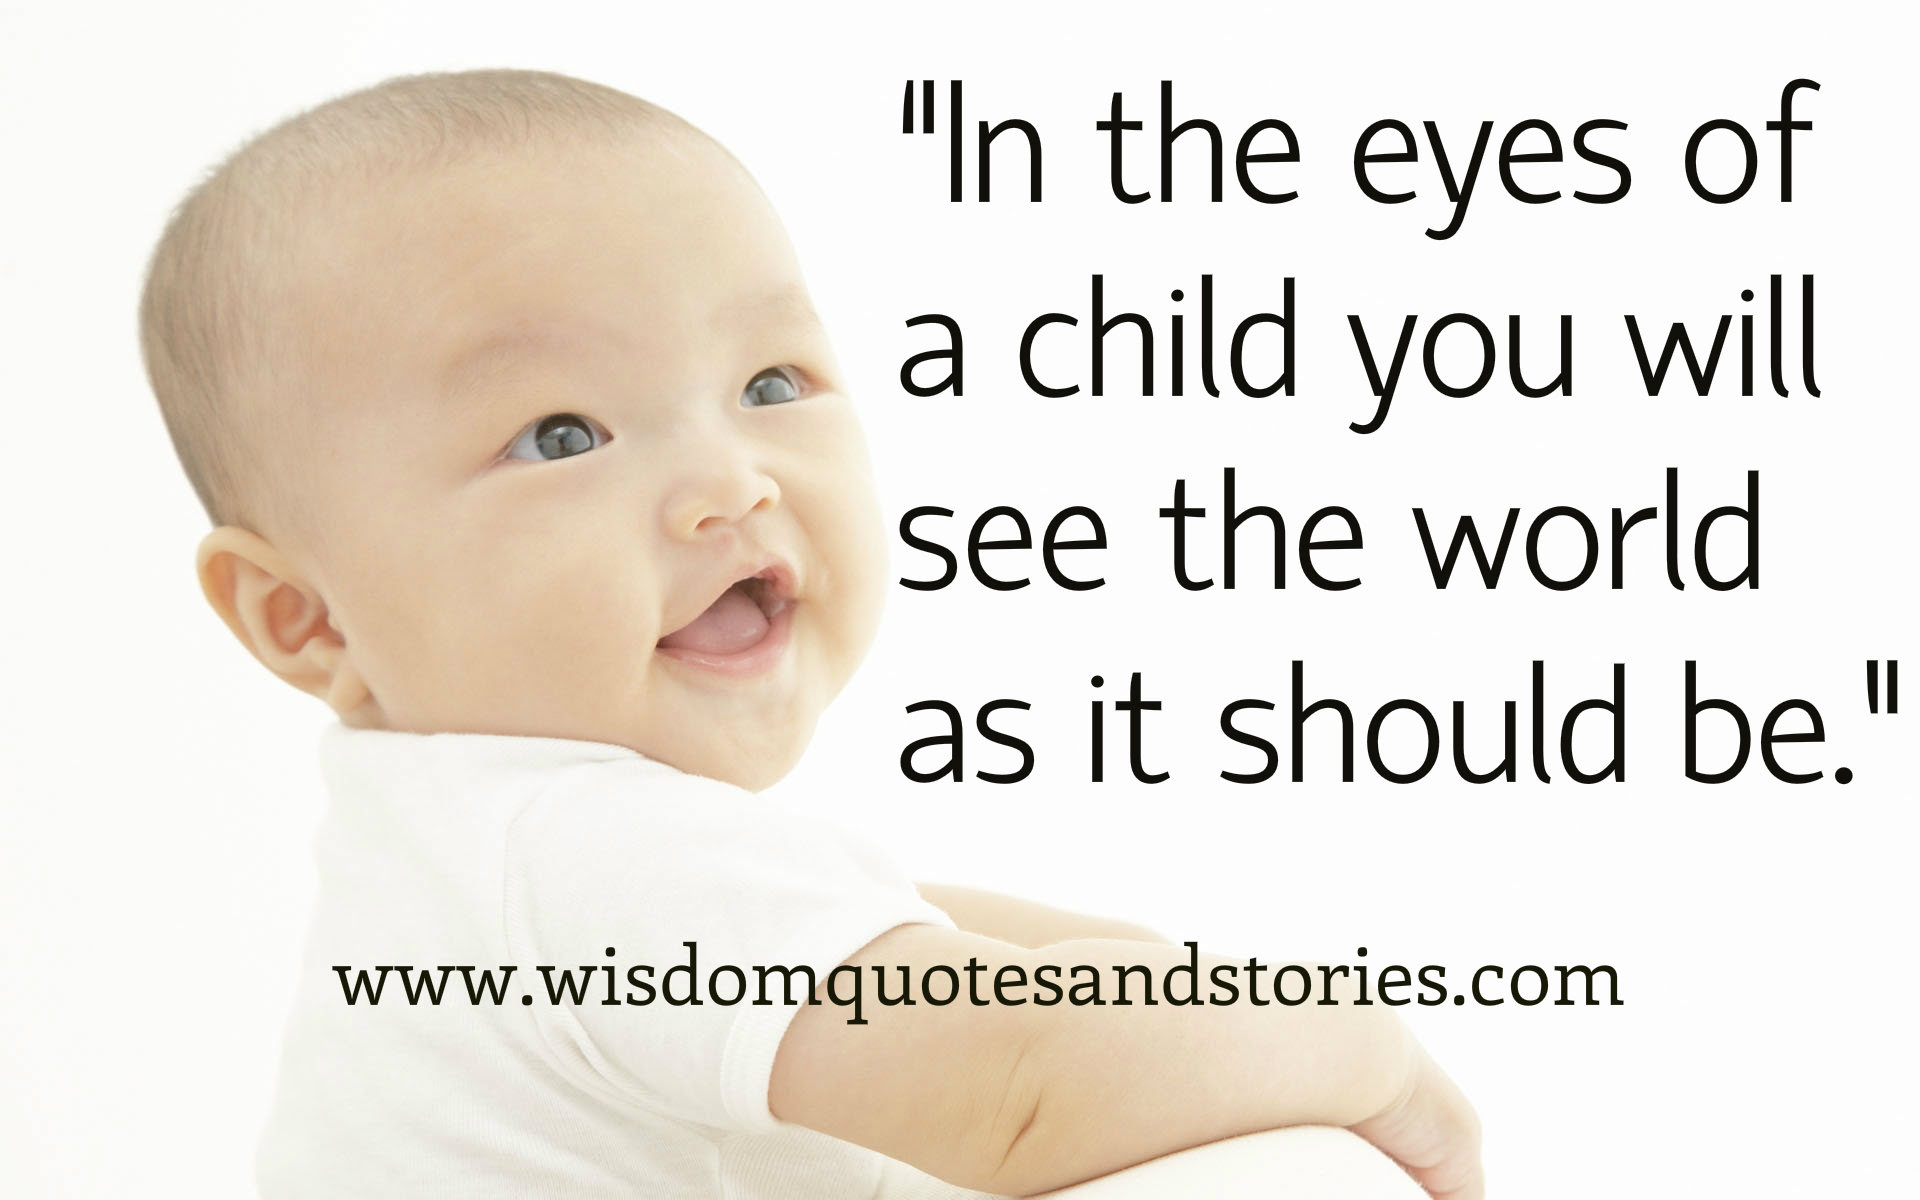 In The Eyes Of A Child Wisdom Quotes Stories